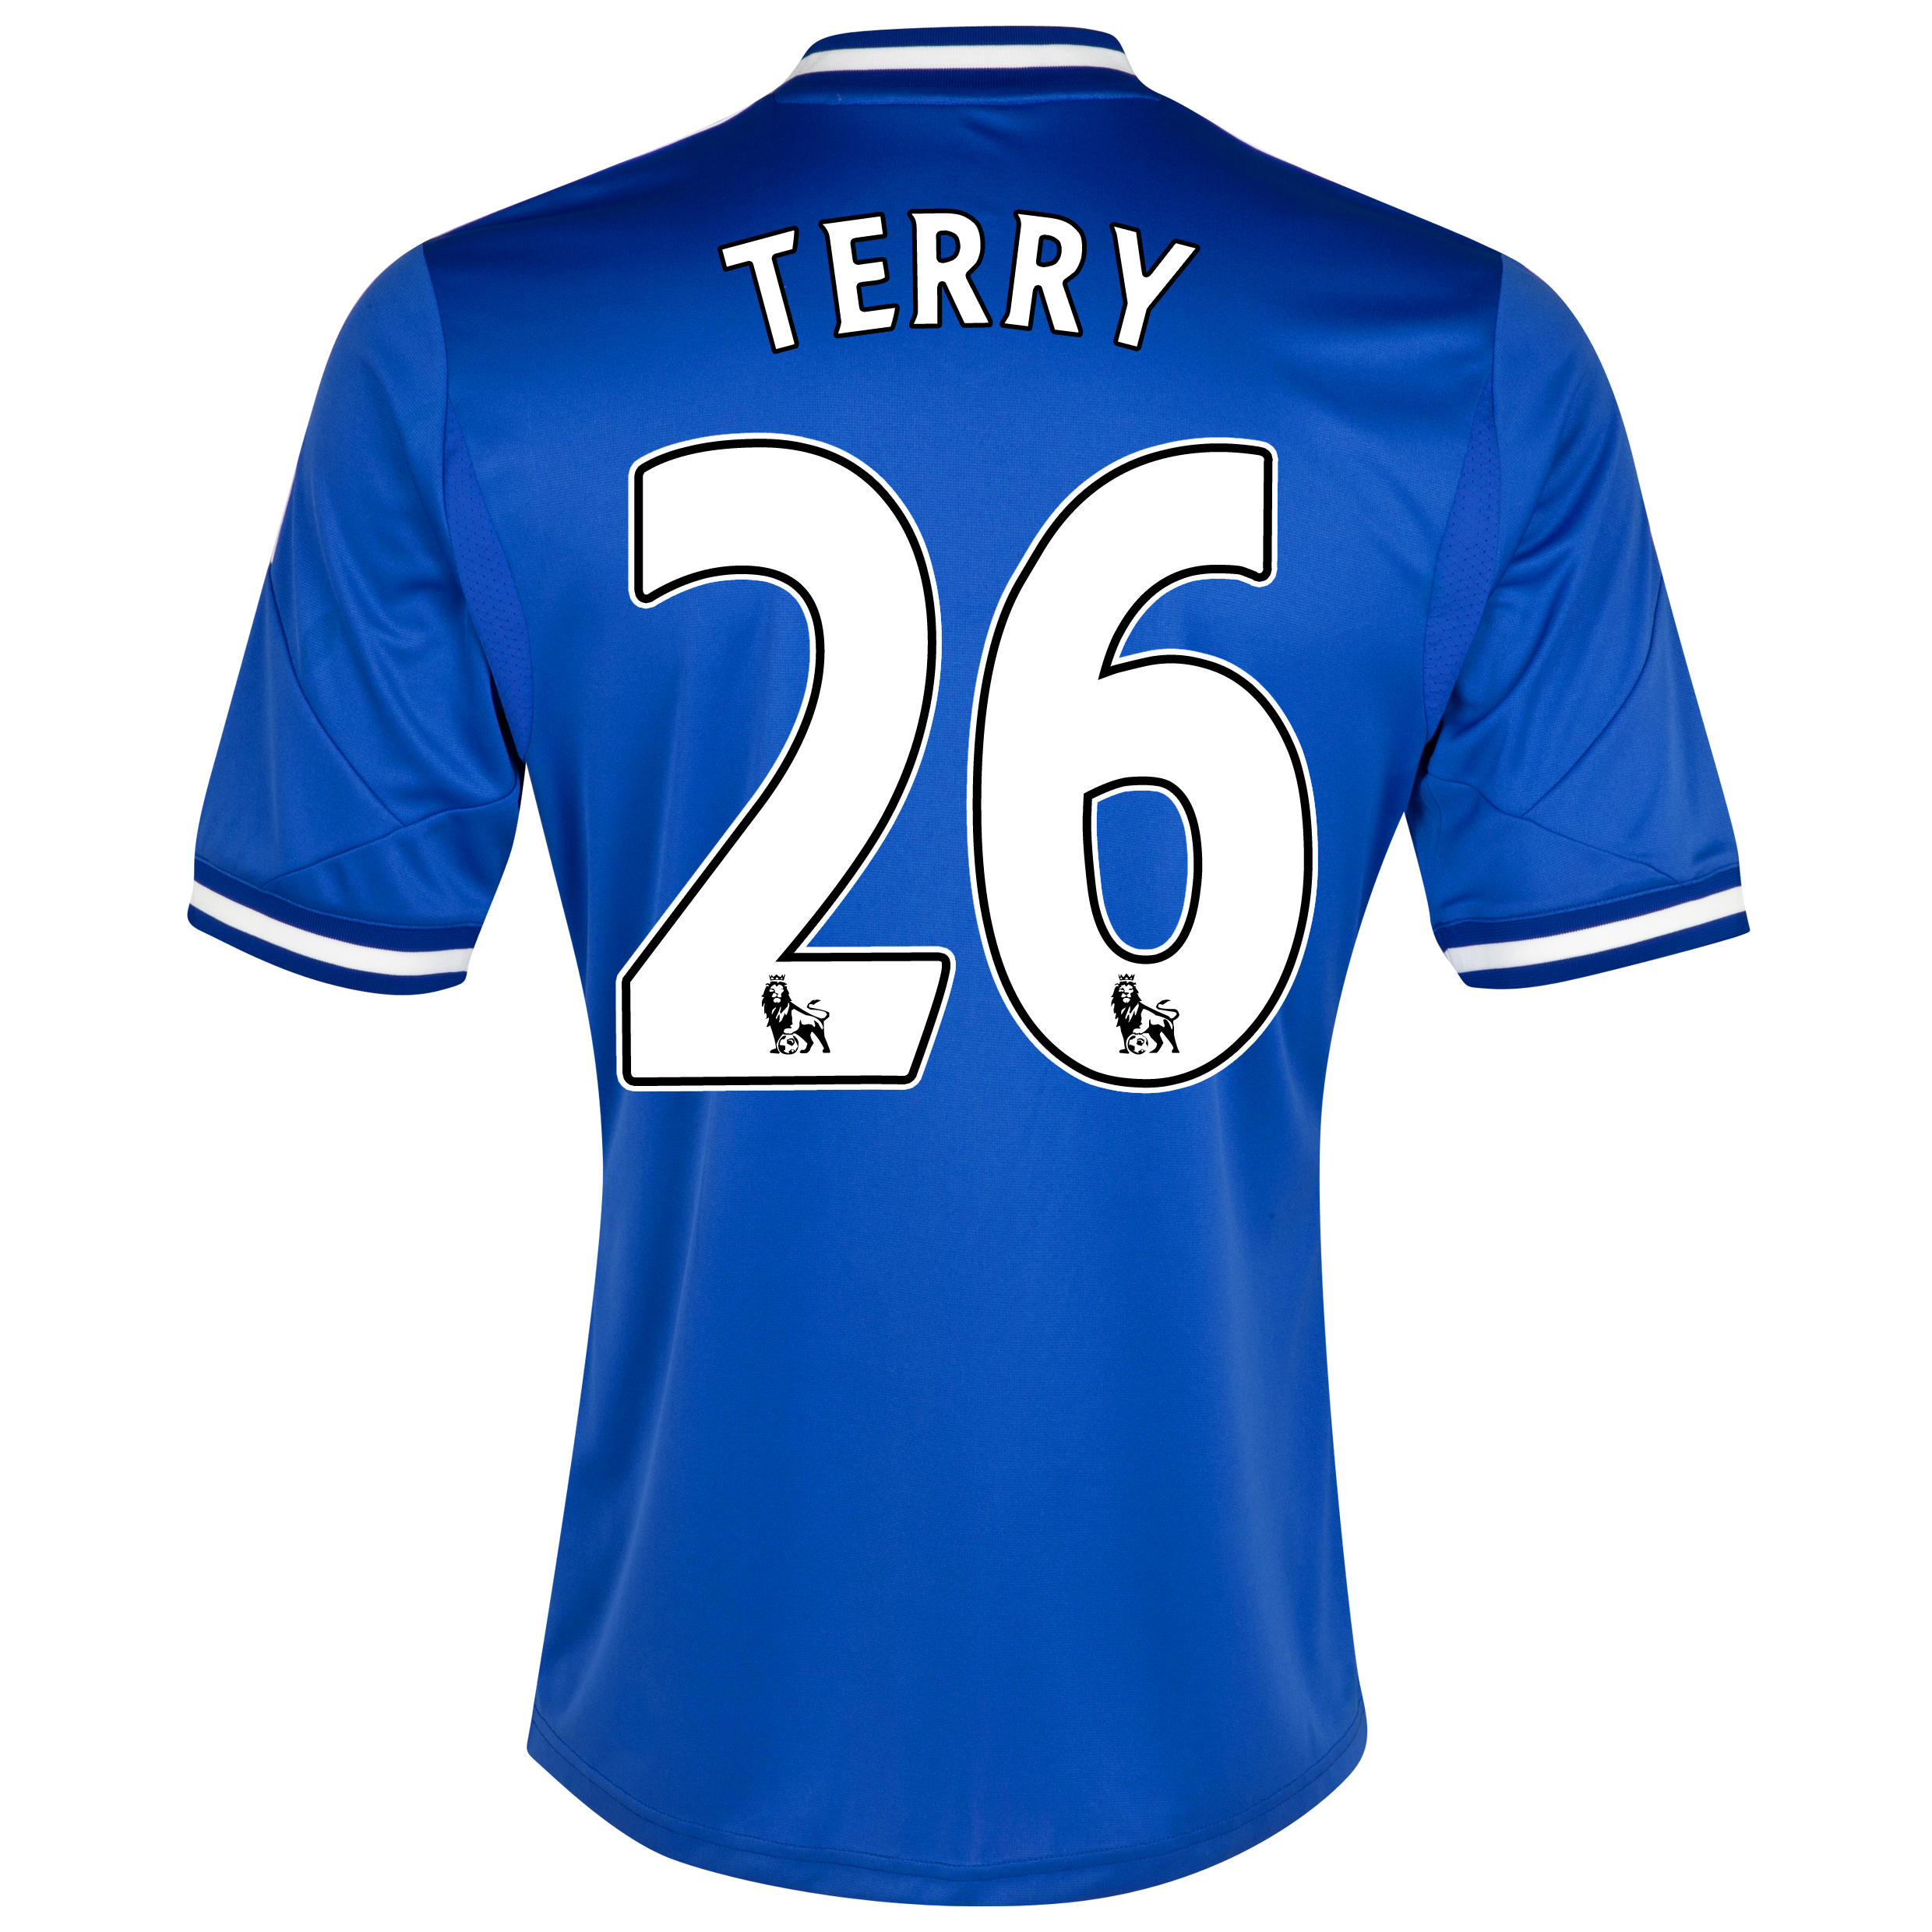 Chelsea Home Shirt 2013/14 - Outsize with Terry 26 printing